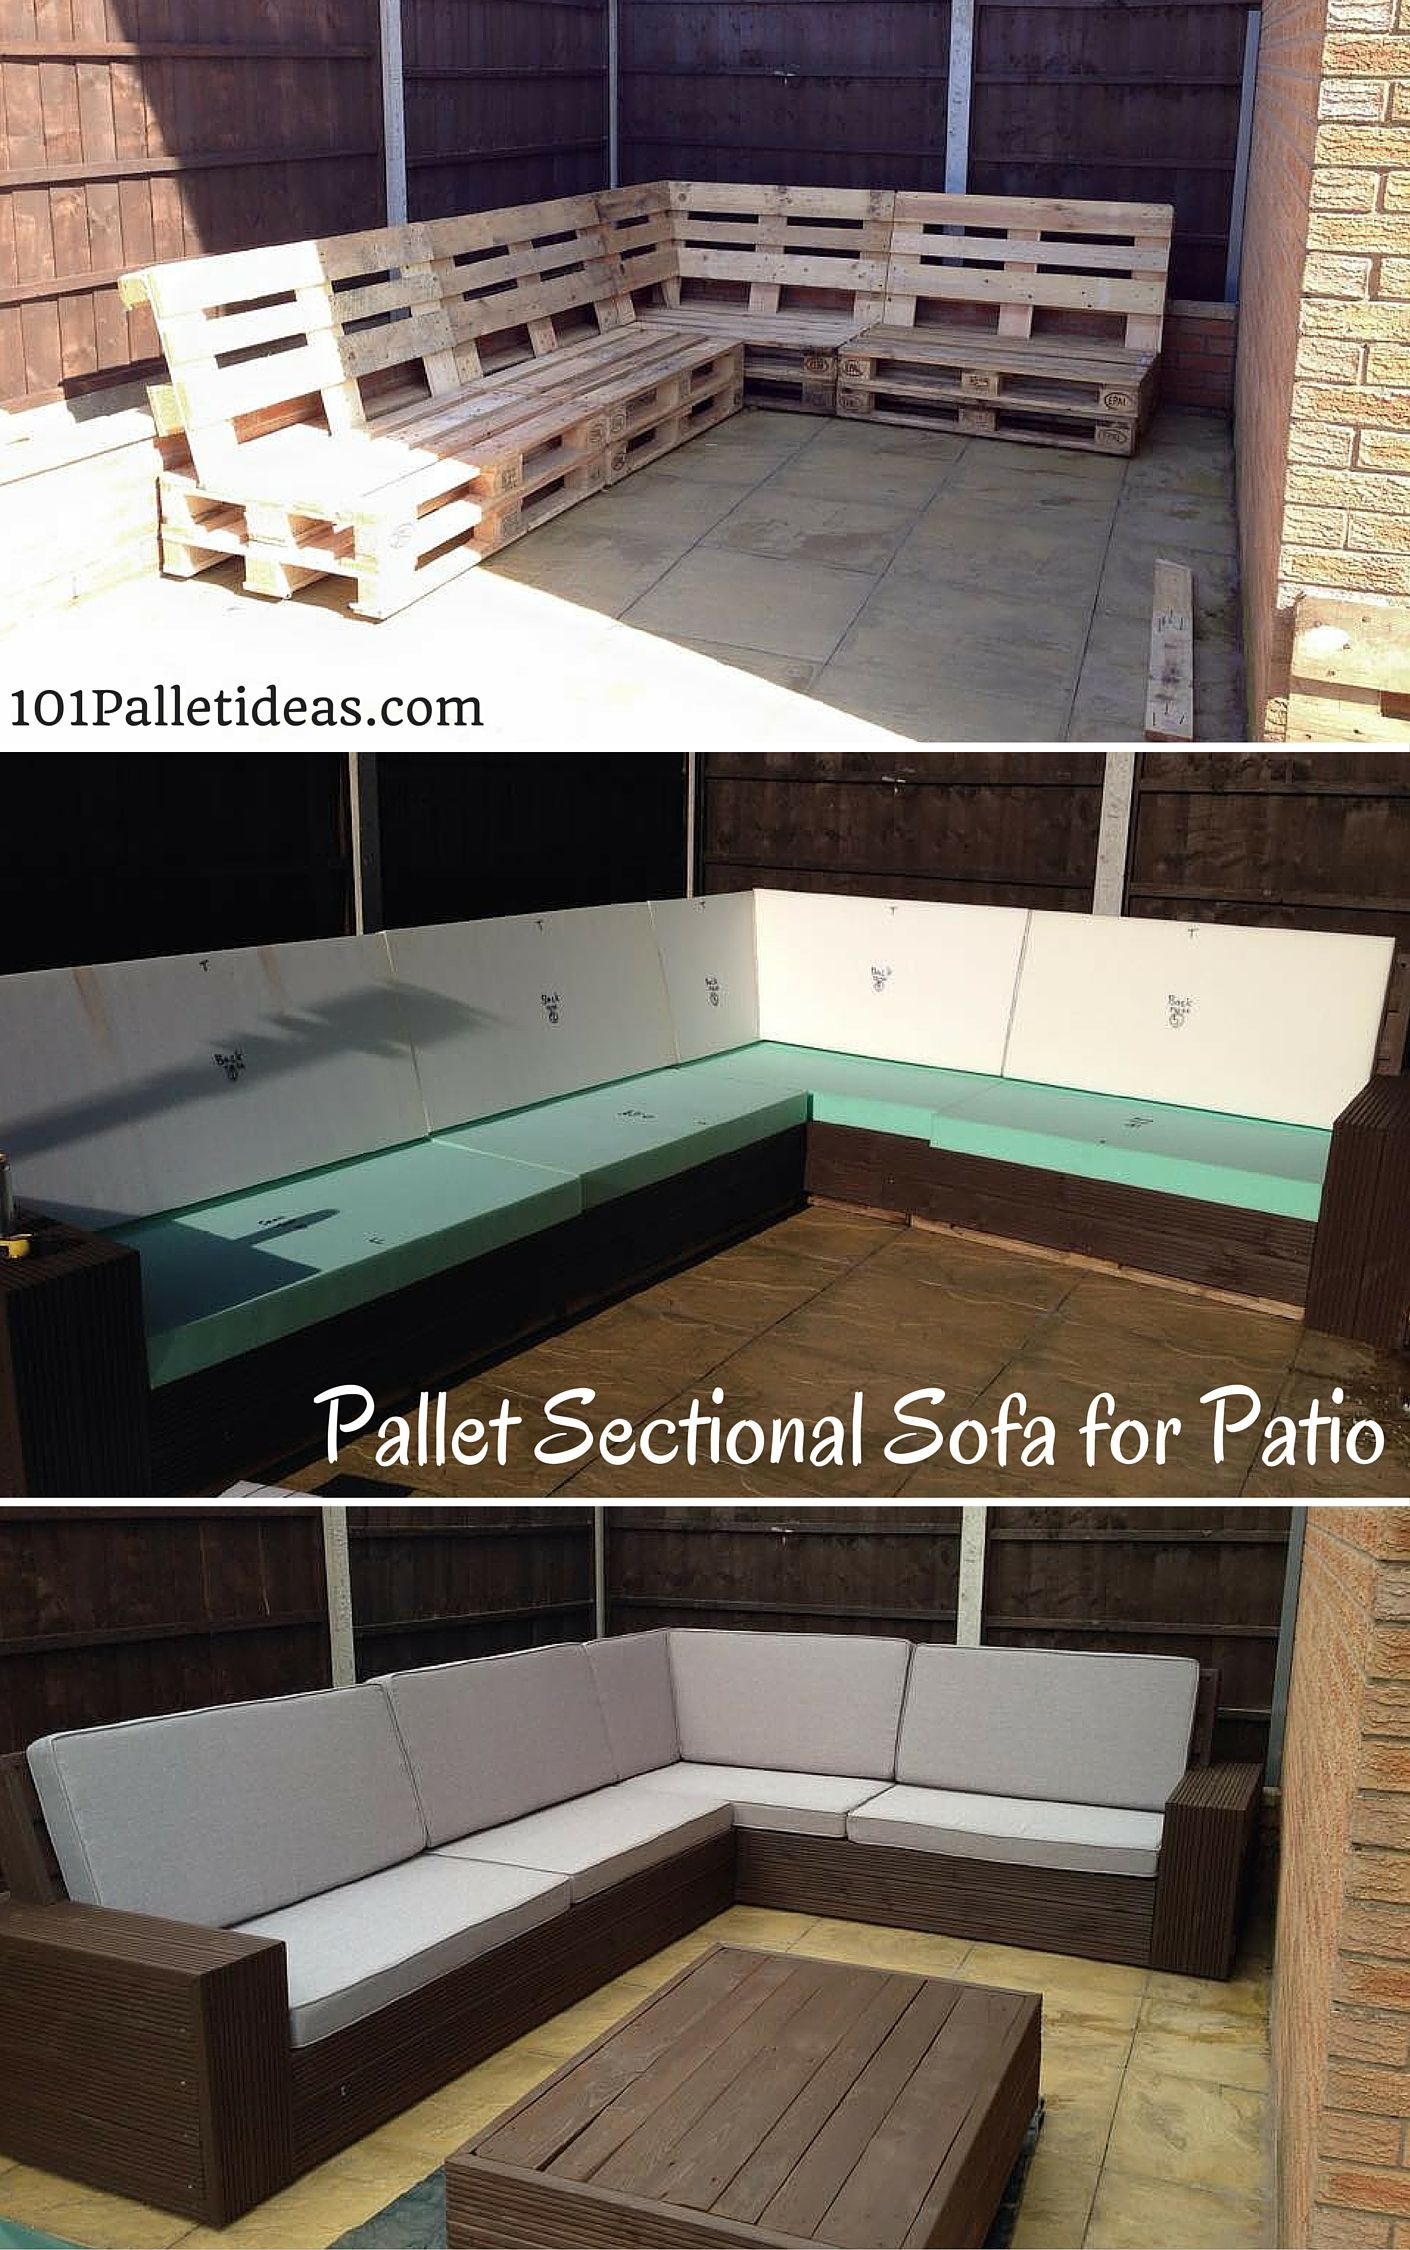 Muebles Terraza Atico Diy Pallet Sectional Sofa For Patio Self Installed 8 10 Seater